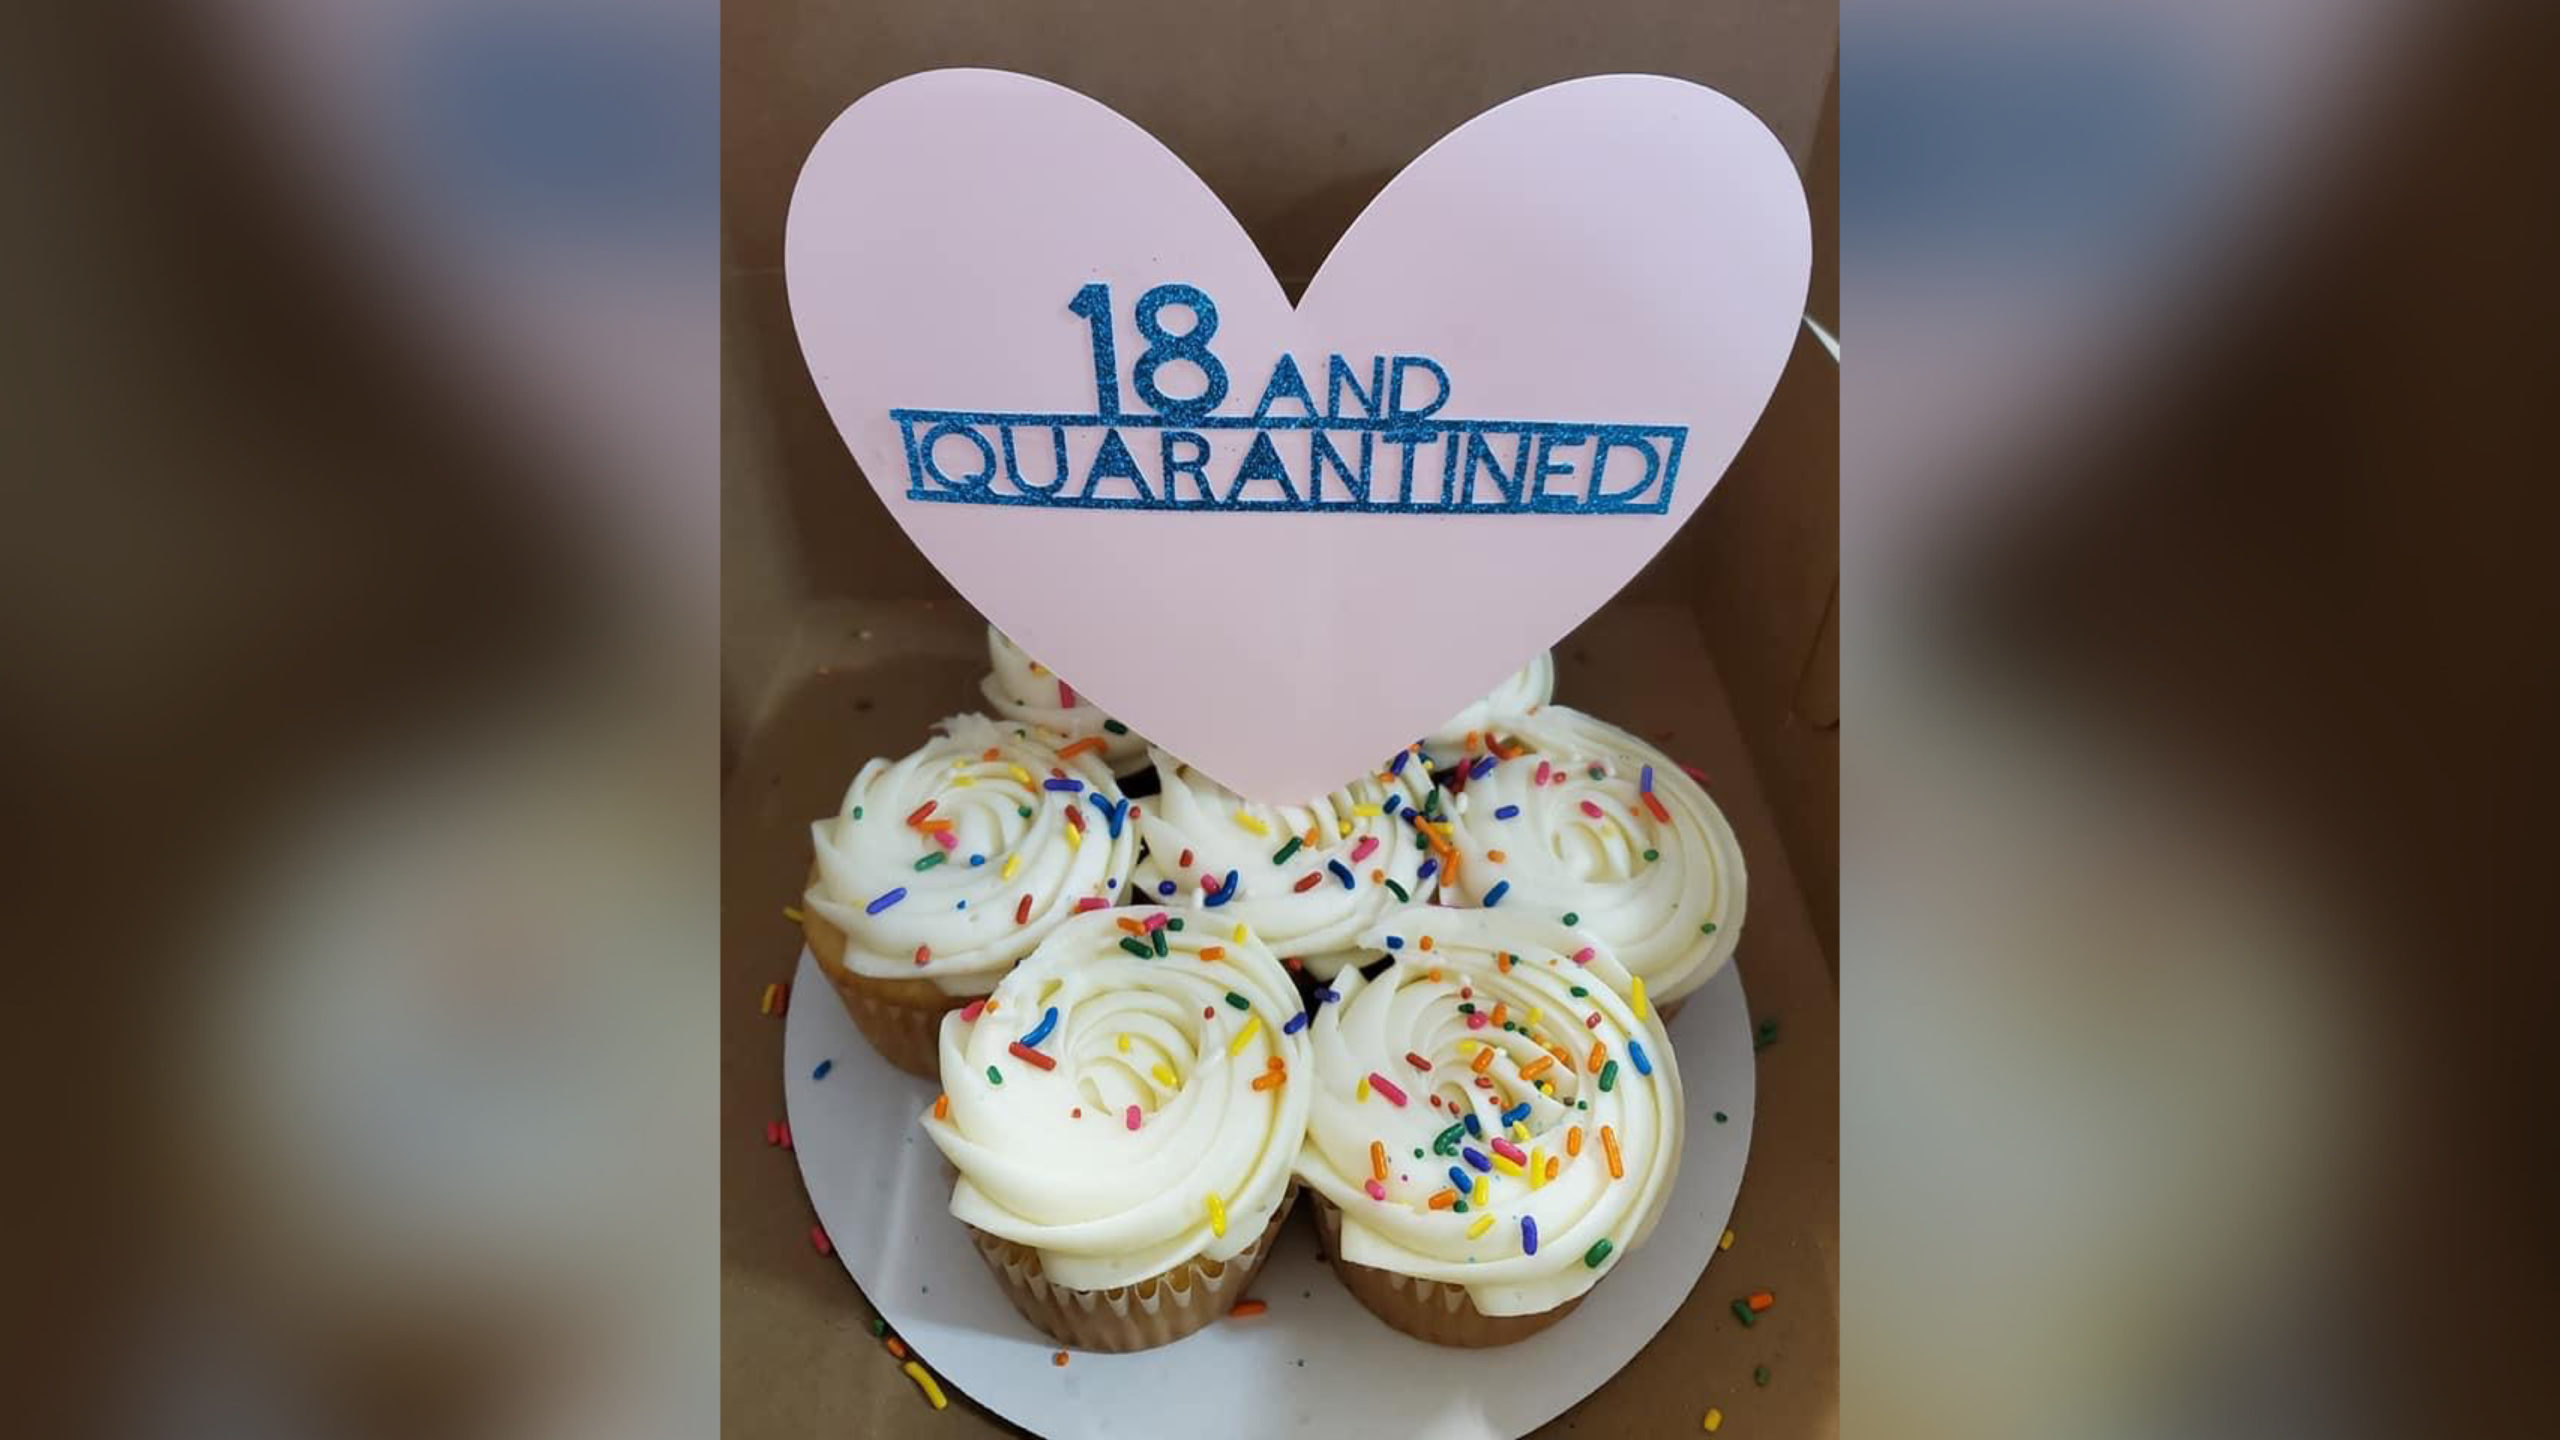 Wondrous Staying Strong El Paso Bakeries Offer Free Cakes For Kids Personalised Birthday Cards Vishlily Jamesorg